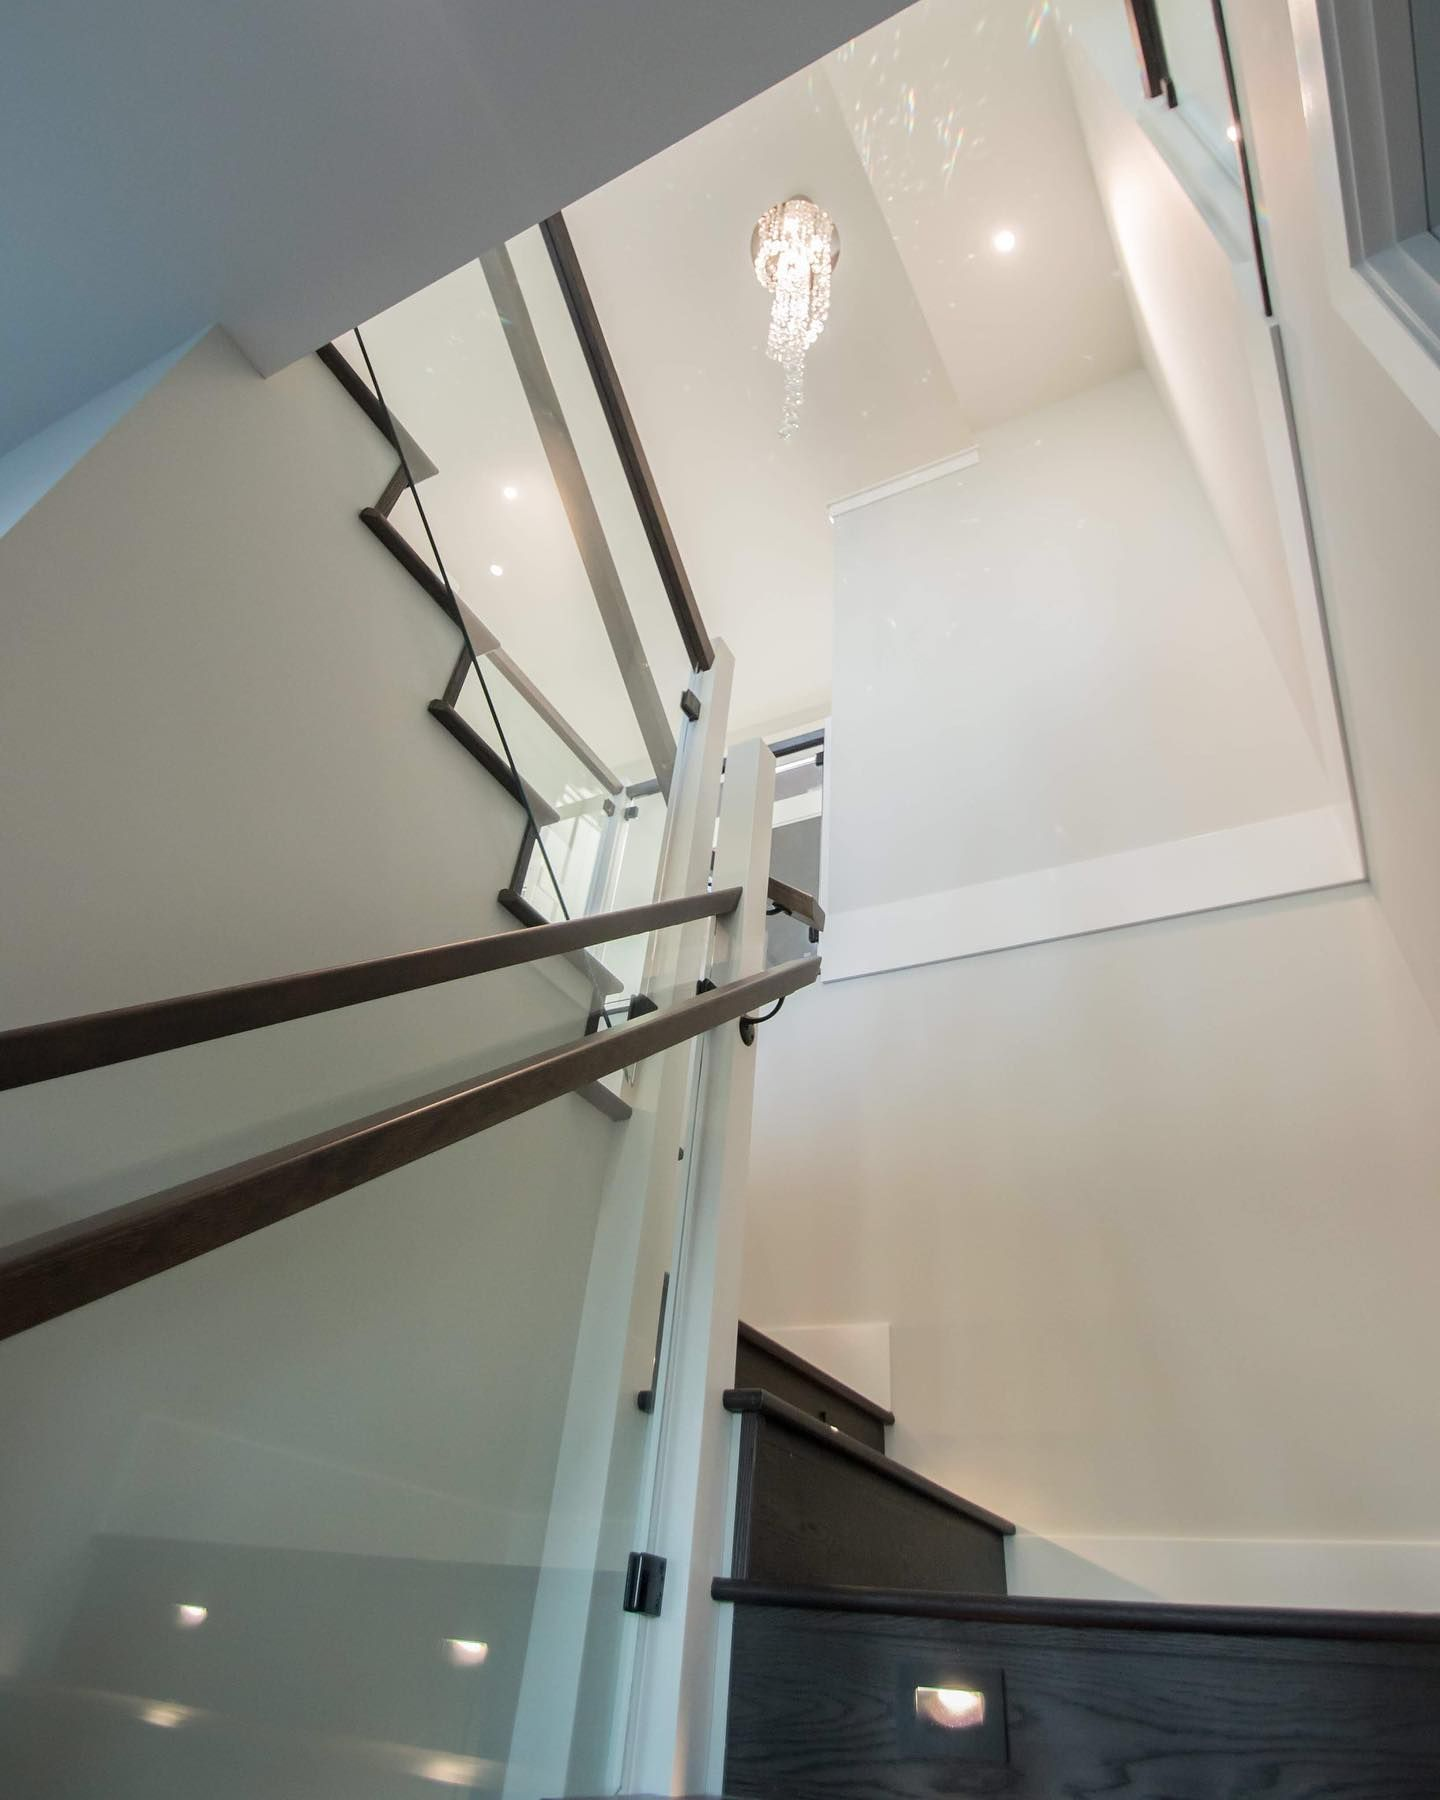 SHINE || The staircase that steals the show with a crystal chandelier, glass railings and lighted steps. Swipe to see some of the details of this custom designed and built staircase by Made to Last Custom Homes.  Project: #goldstreamheightscustomhome  Design: @tinamoizerdesigns  Build: @madetolasthomes  Photo: @karatibbel . . . . . #staircase #stairsdesign #stairs #showstopper #crystalchandelier #interiordesign #interiordesignlovers #mymodern #modernhome #homemagazine #designmagazine #designforl